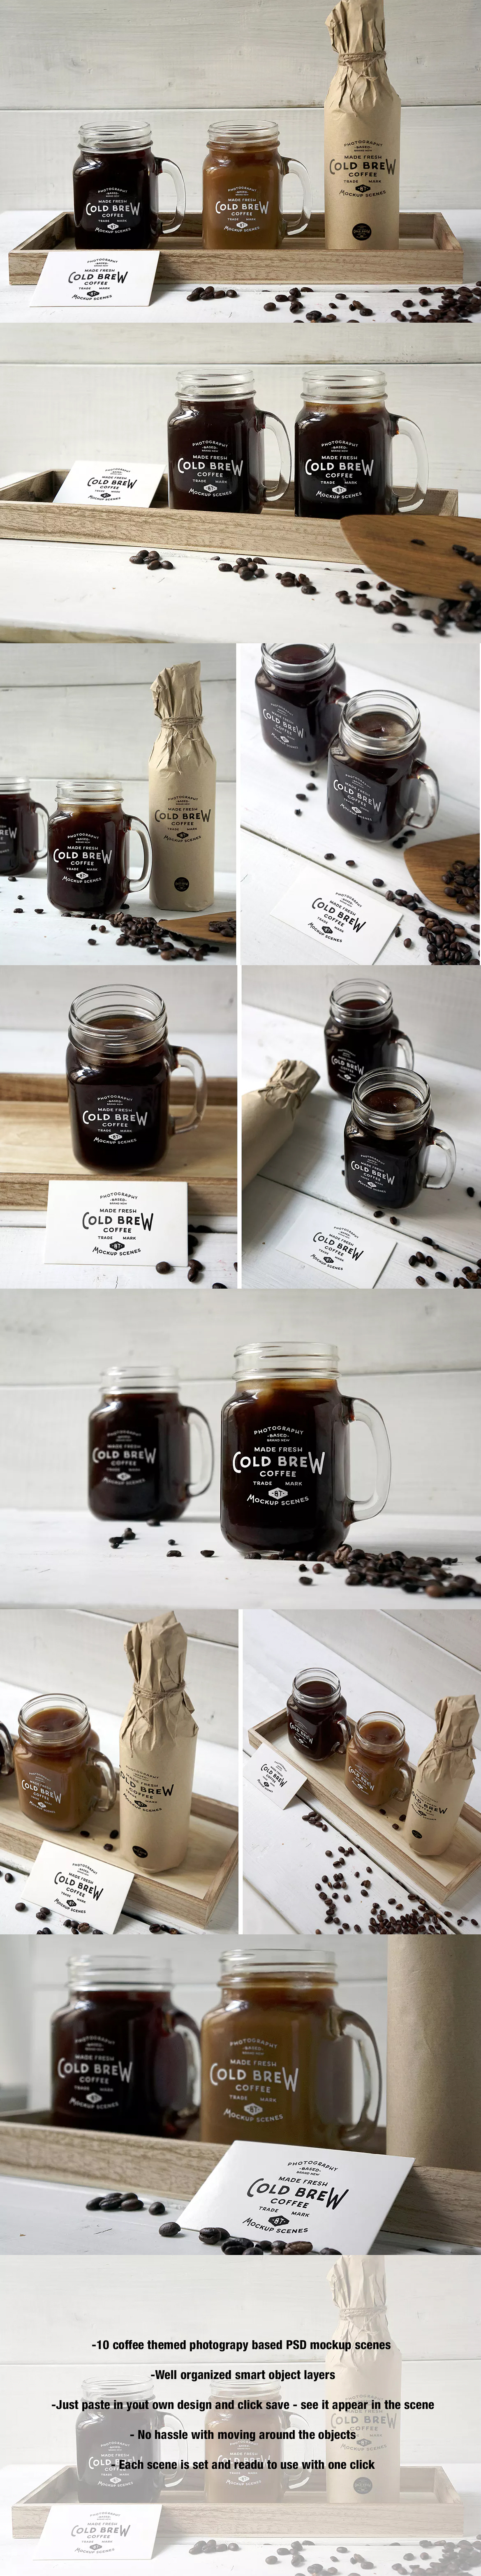 Cold Brew Coffee Mockup by amris on Cold brew, Brewing